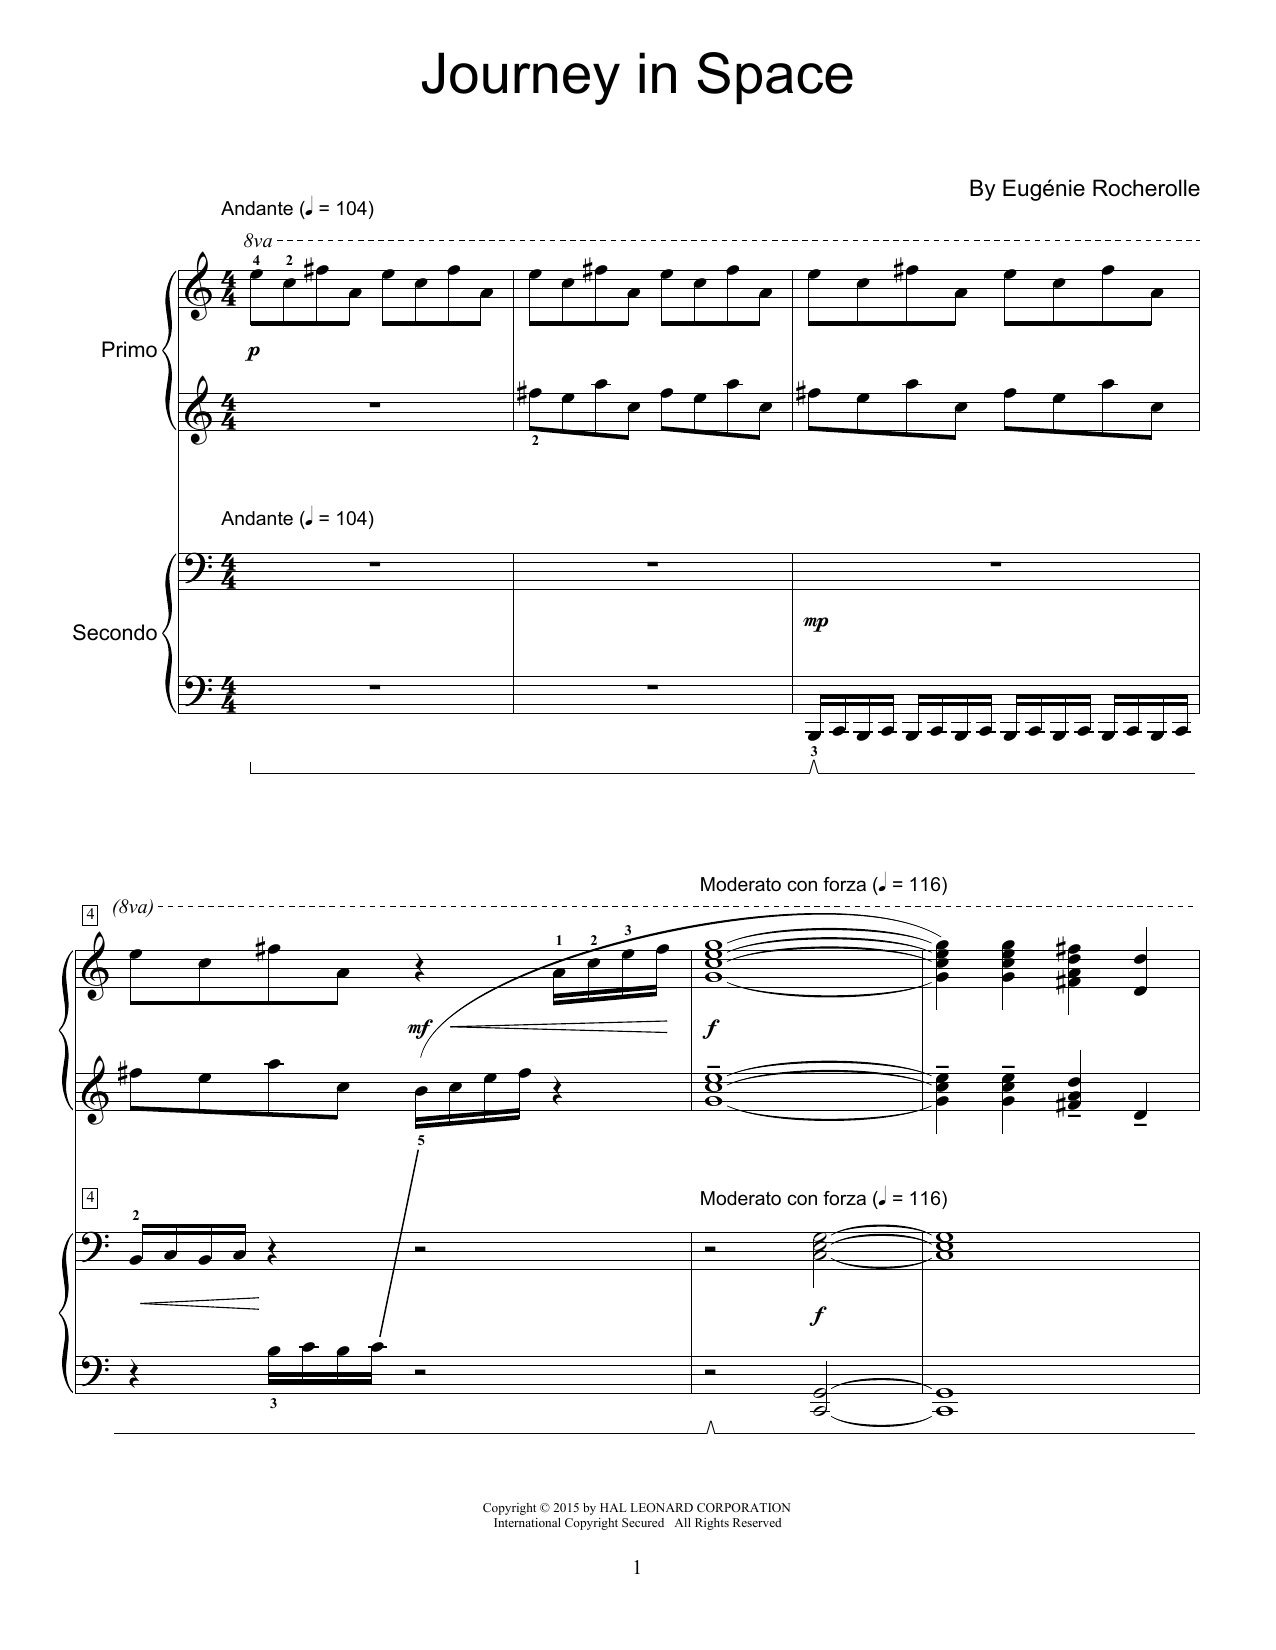 Partition piano Journey In Space de Eugenie Rocherolle - 4 mains